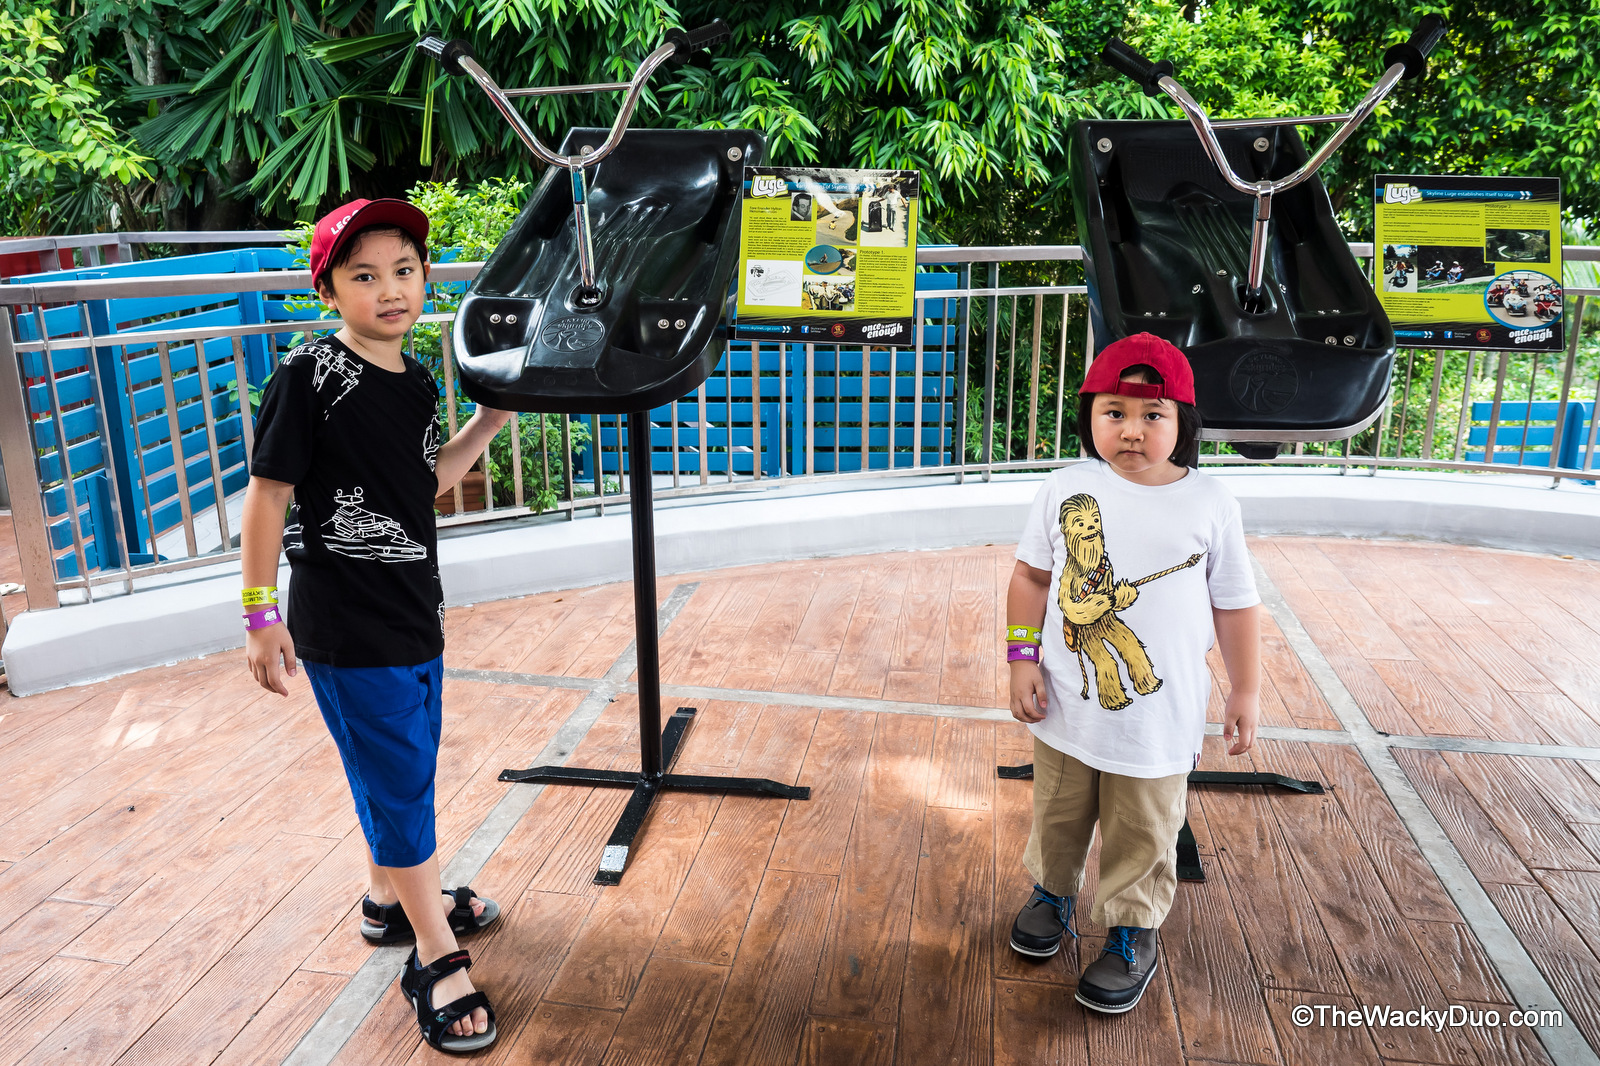 Skyline Luge Sentosa 10 Tastic Ways To Celebrate The Wacky Duo Ampamp Singapore 2x Favourite Look Bermudas And T Shirts